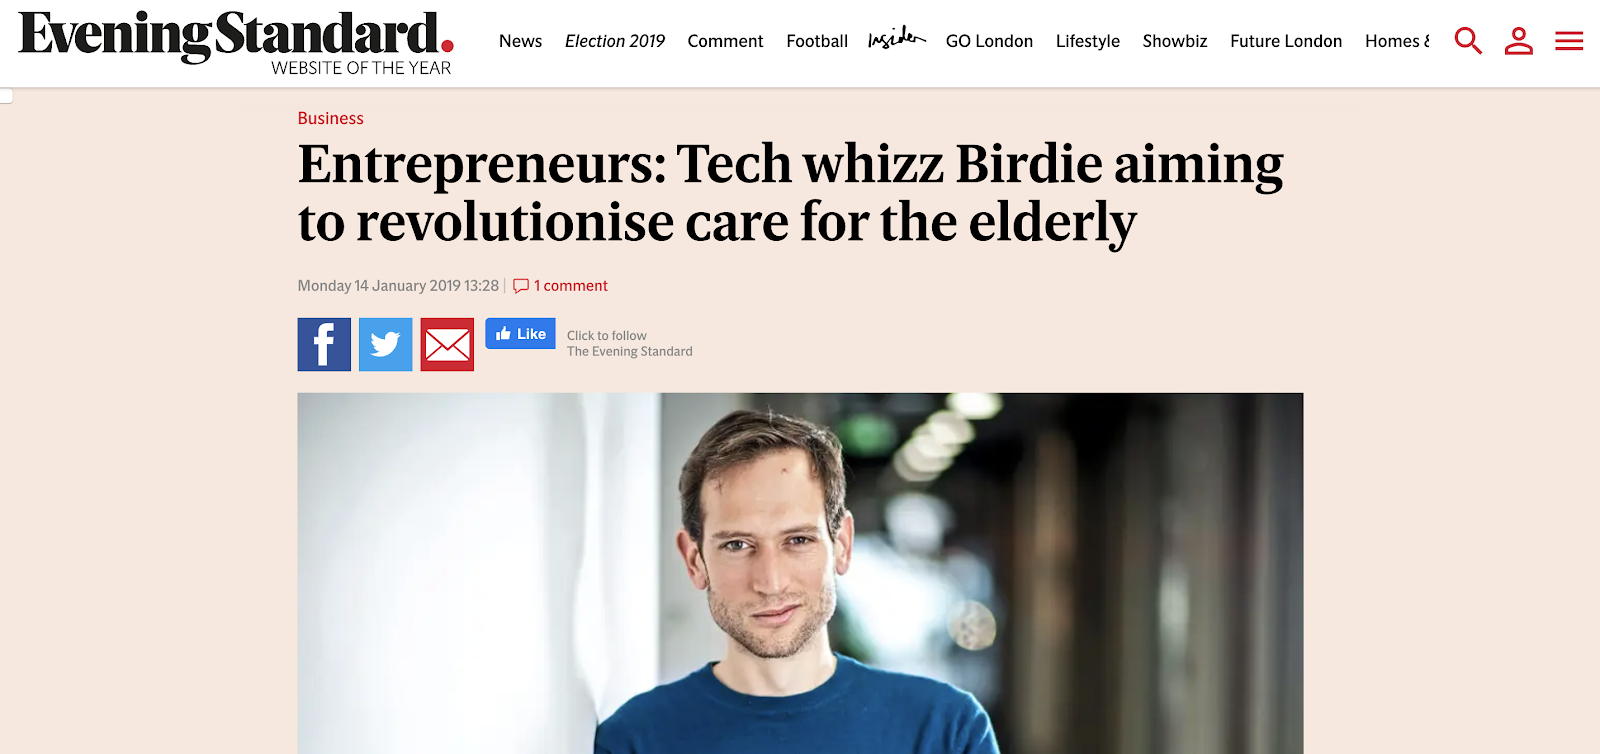 Birdie featured in an article in the evening standard explaining how birdie is revolutionising care for the elderly